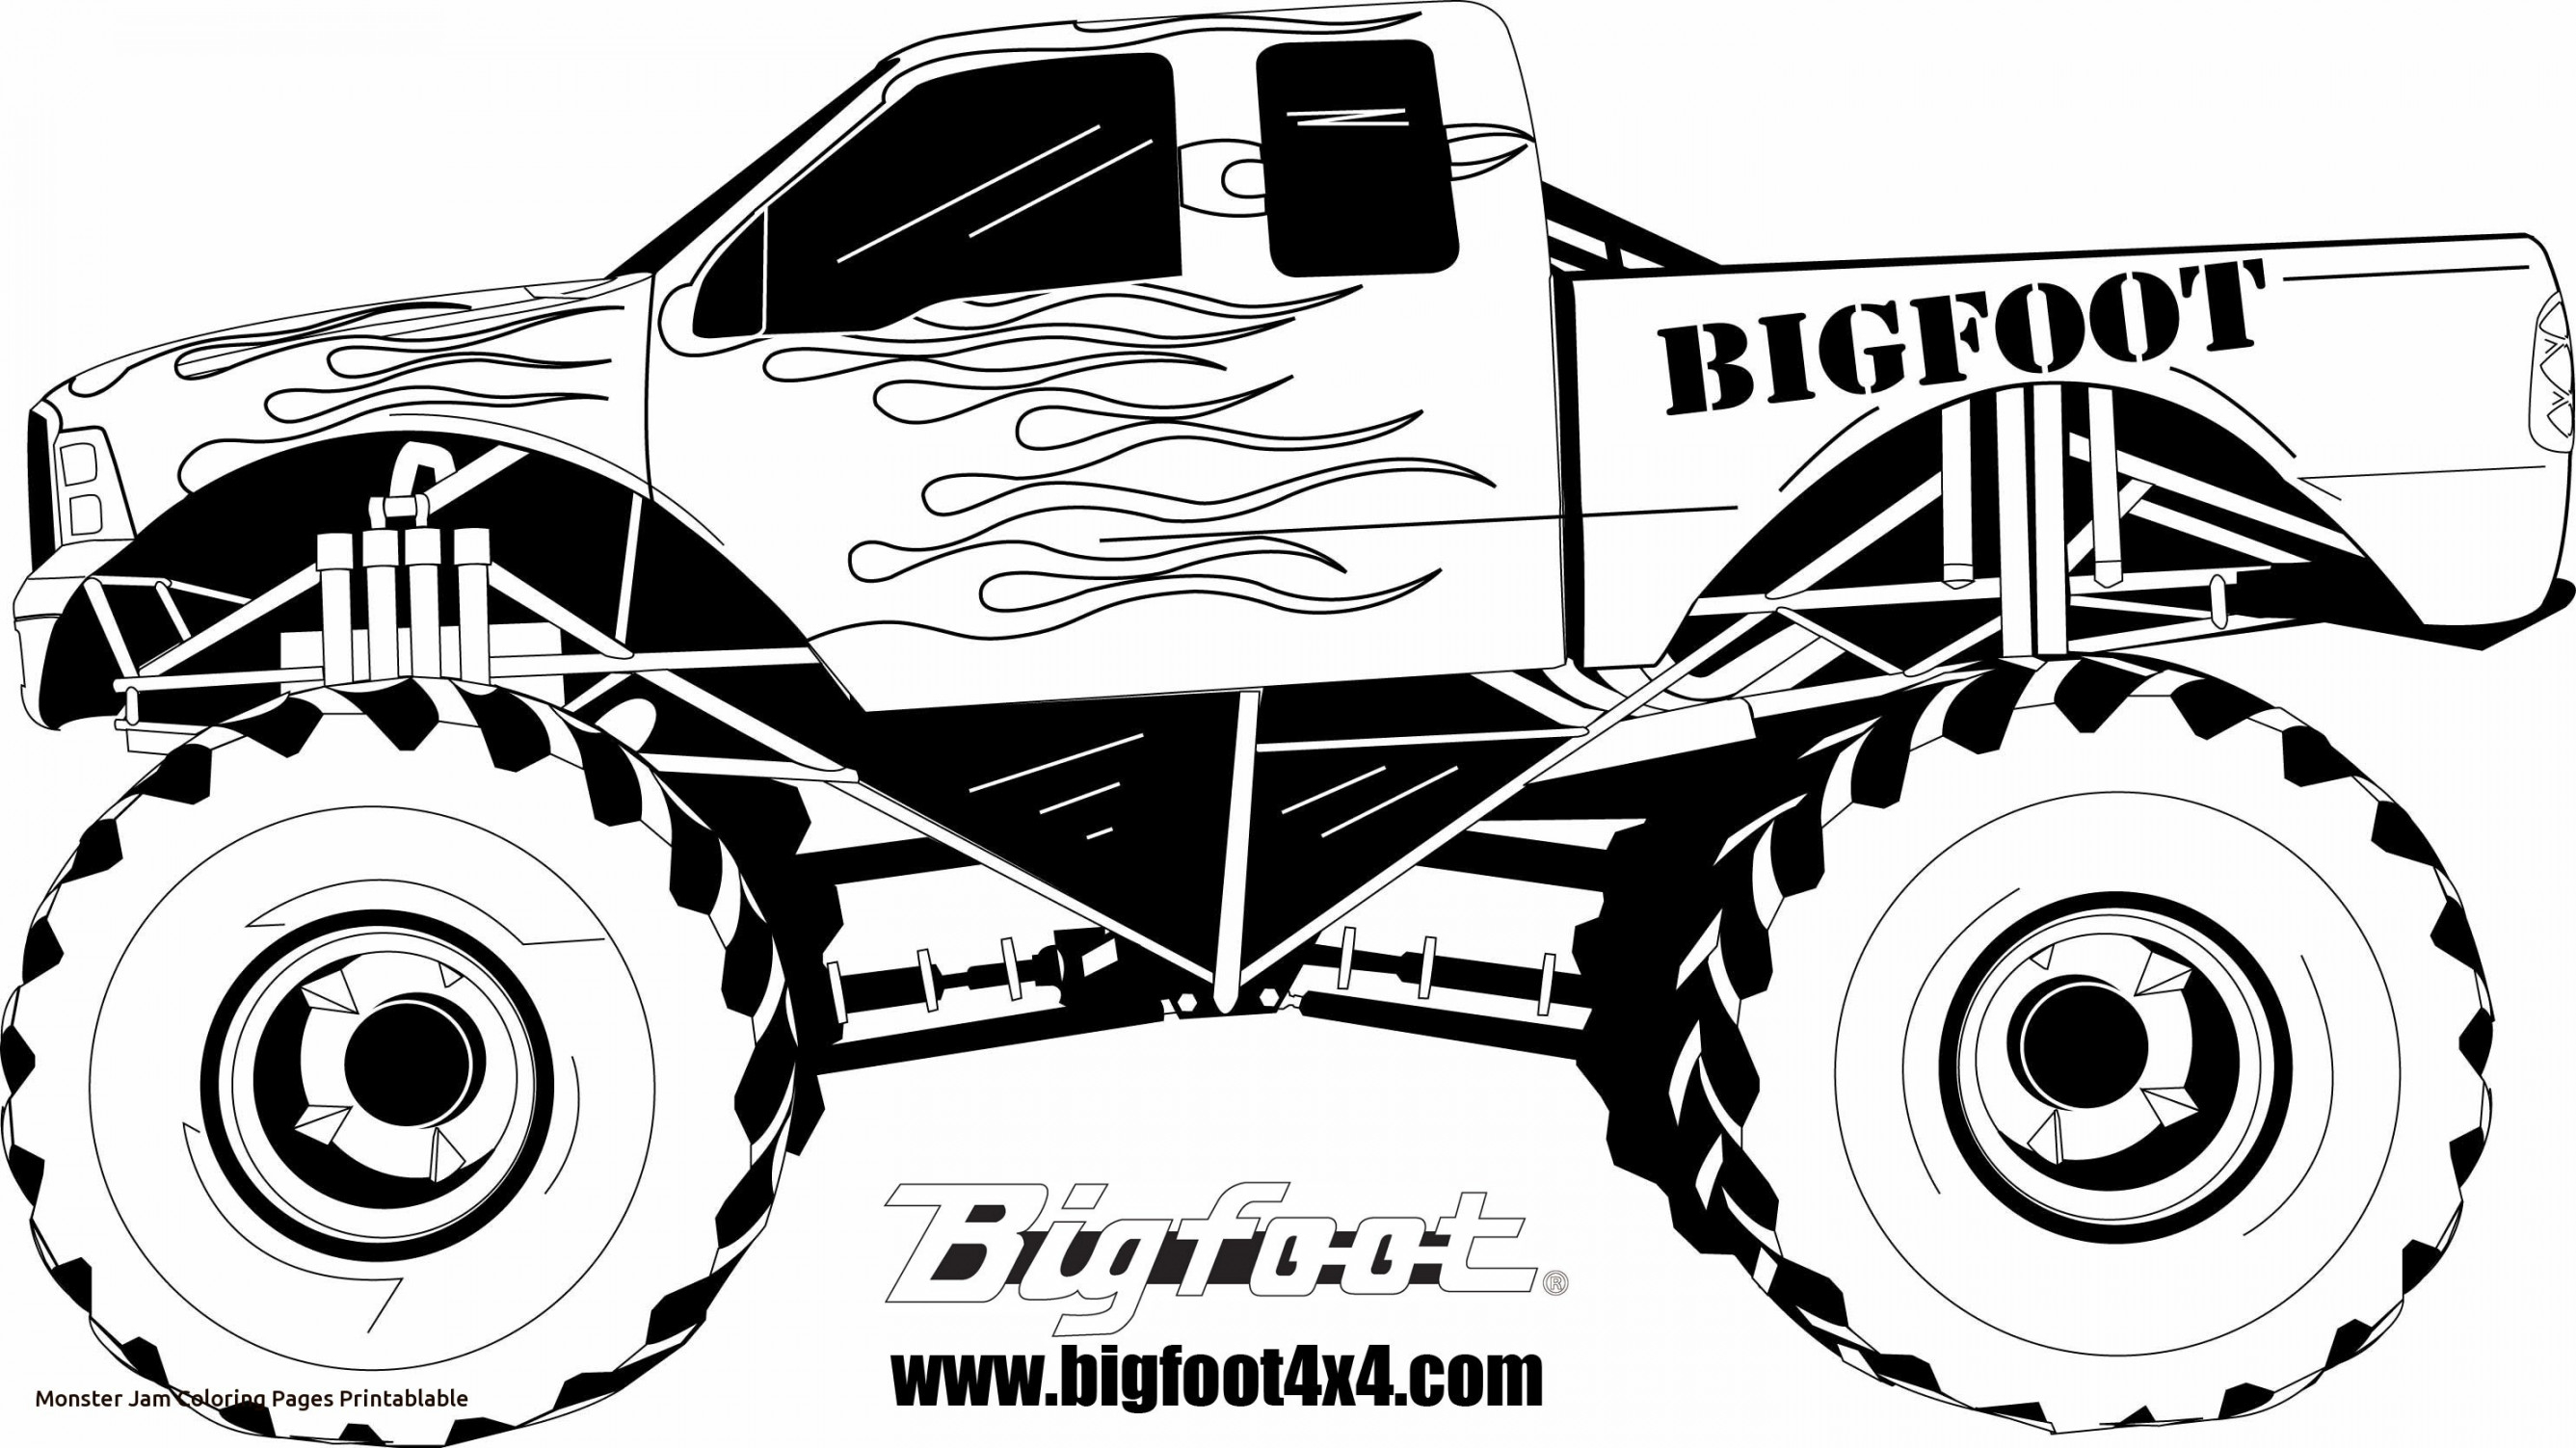 El Toro Loco | Truck coloring pages, Monster truck coloring pages ... | 1503x2673